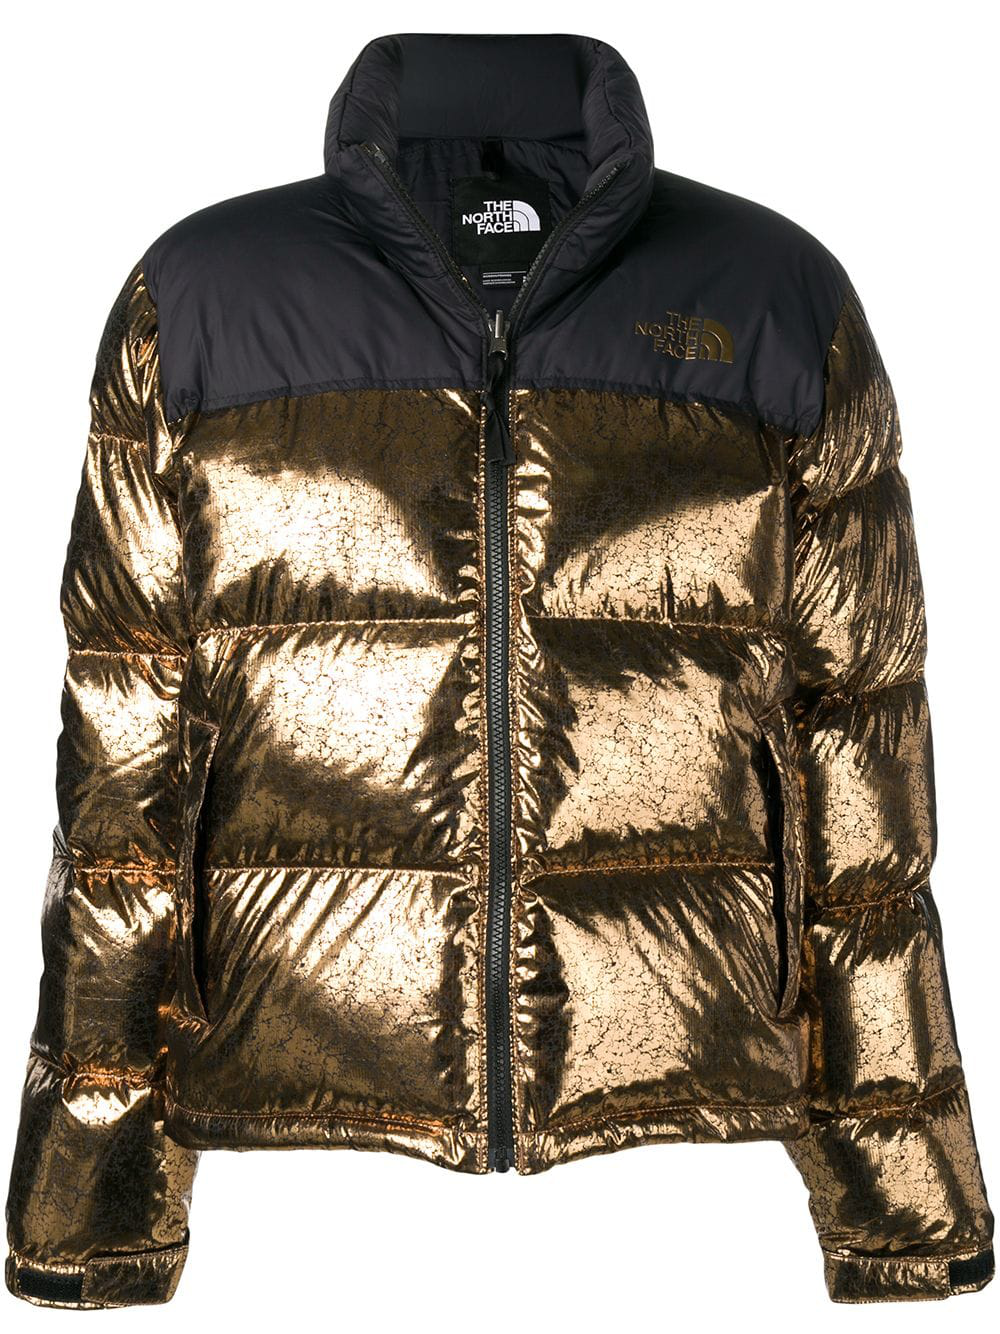 The North Face Metallic Puffer Jacket In Gold | ModeSens